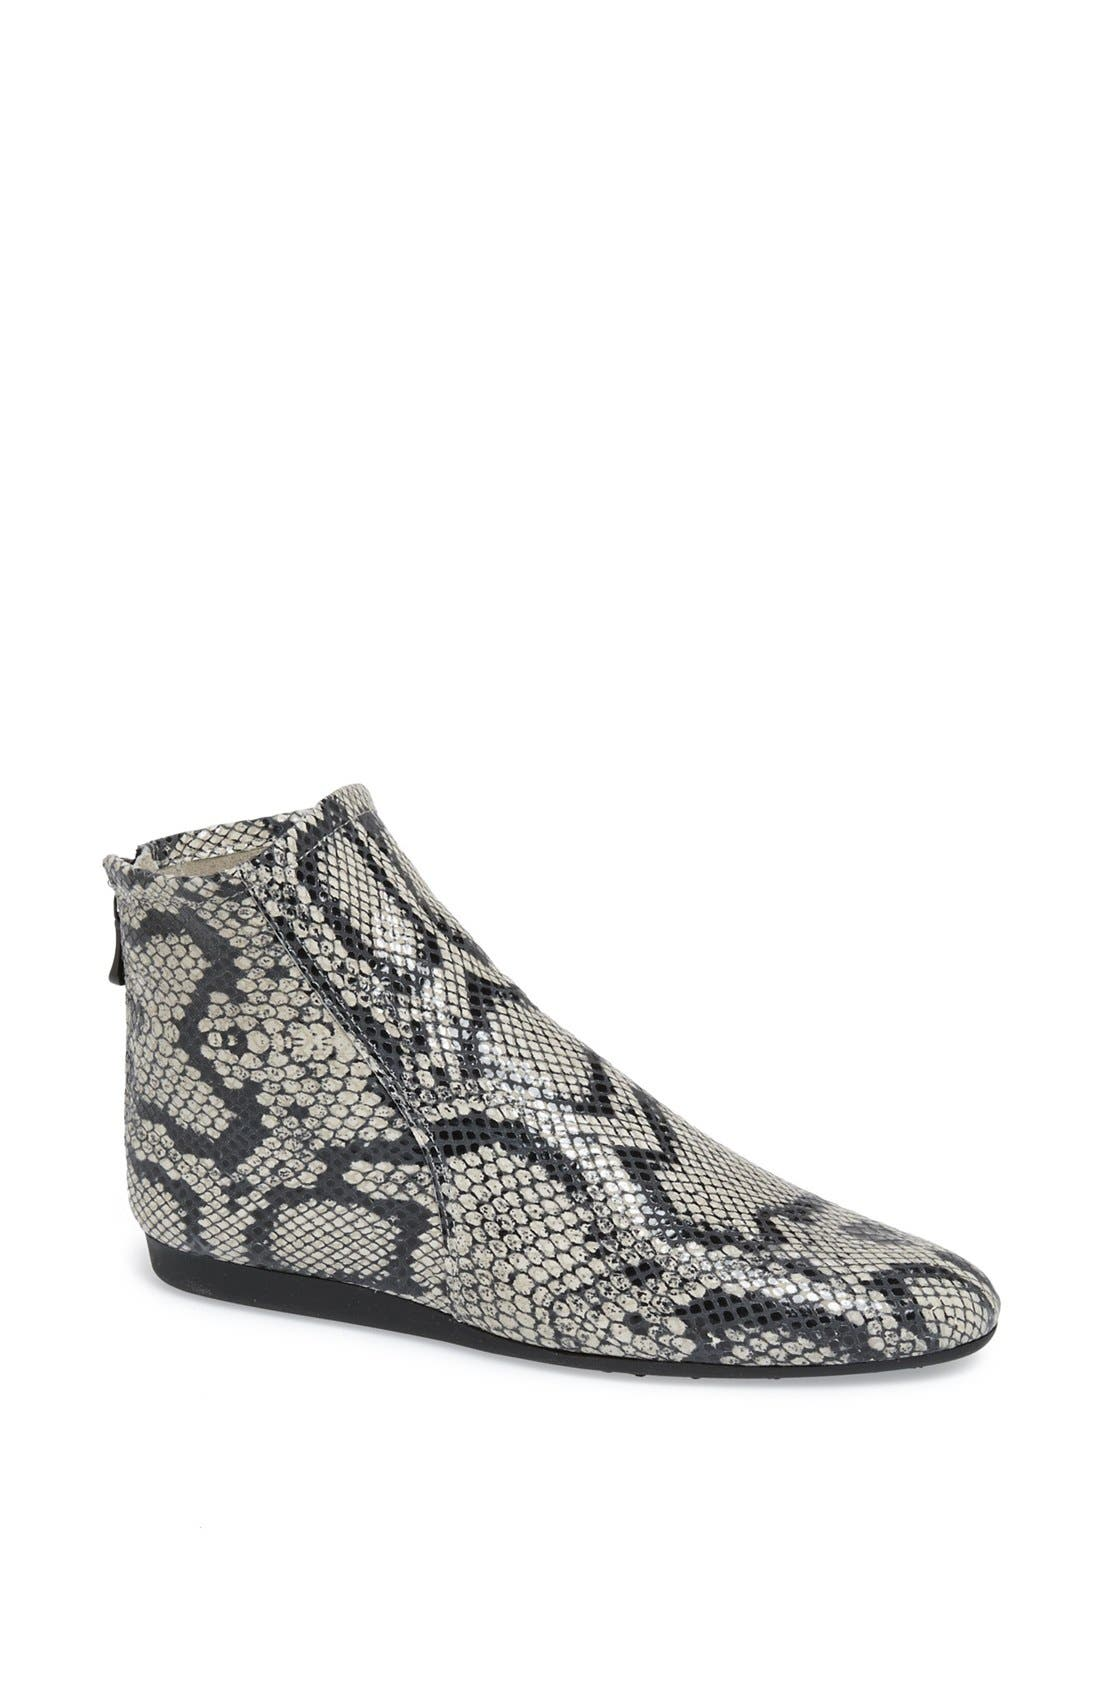 Main Image - Arche 'Lilou' Ankle Boot